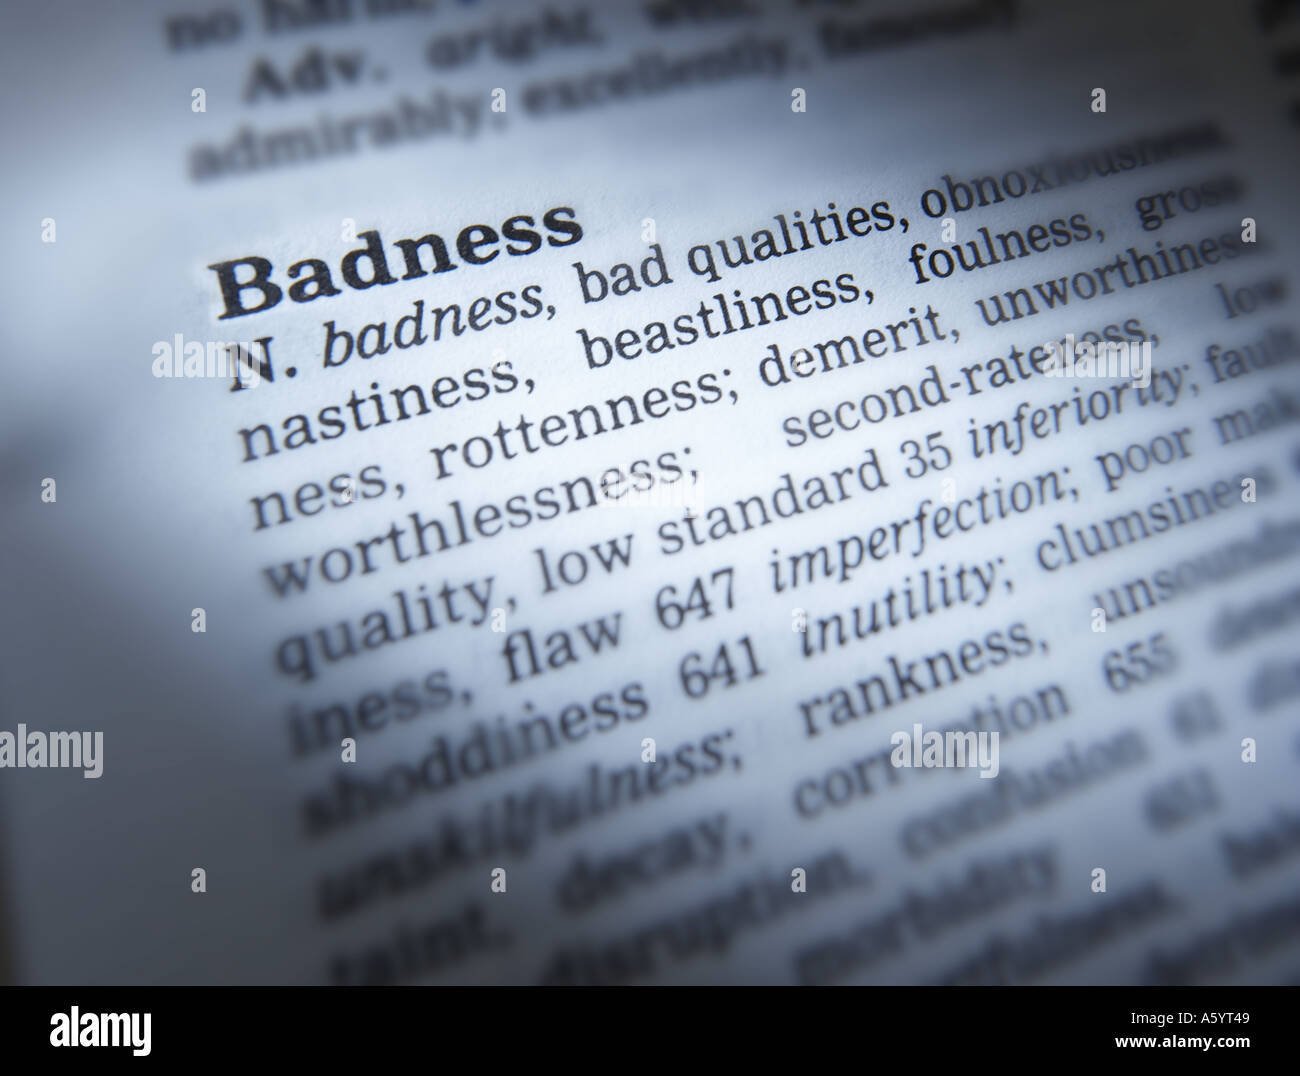 THESAURUS PAGE SHOWING DEFINITION OF WORD BADNESS